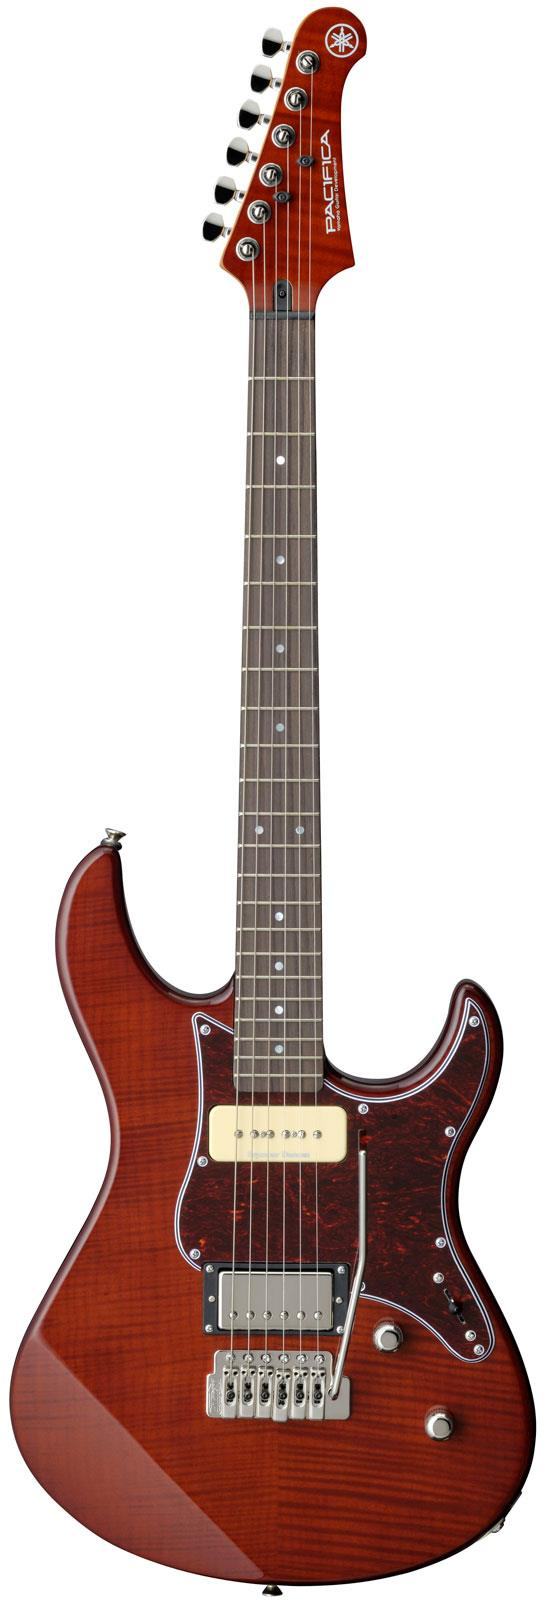 Yamaha Pacifica 611VFM Root Beer